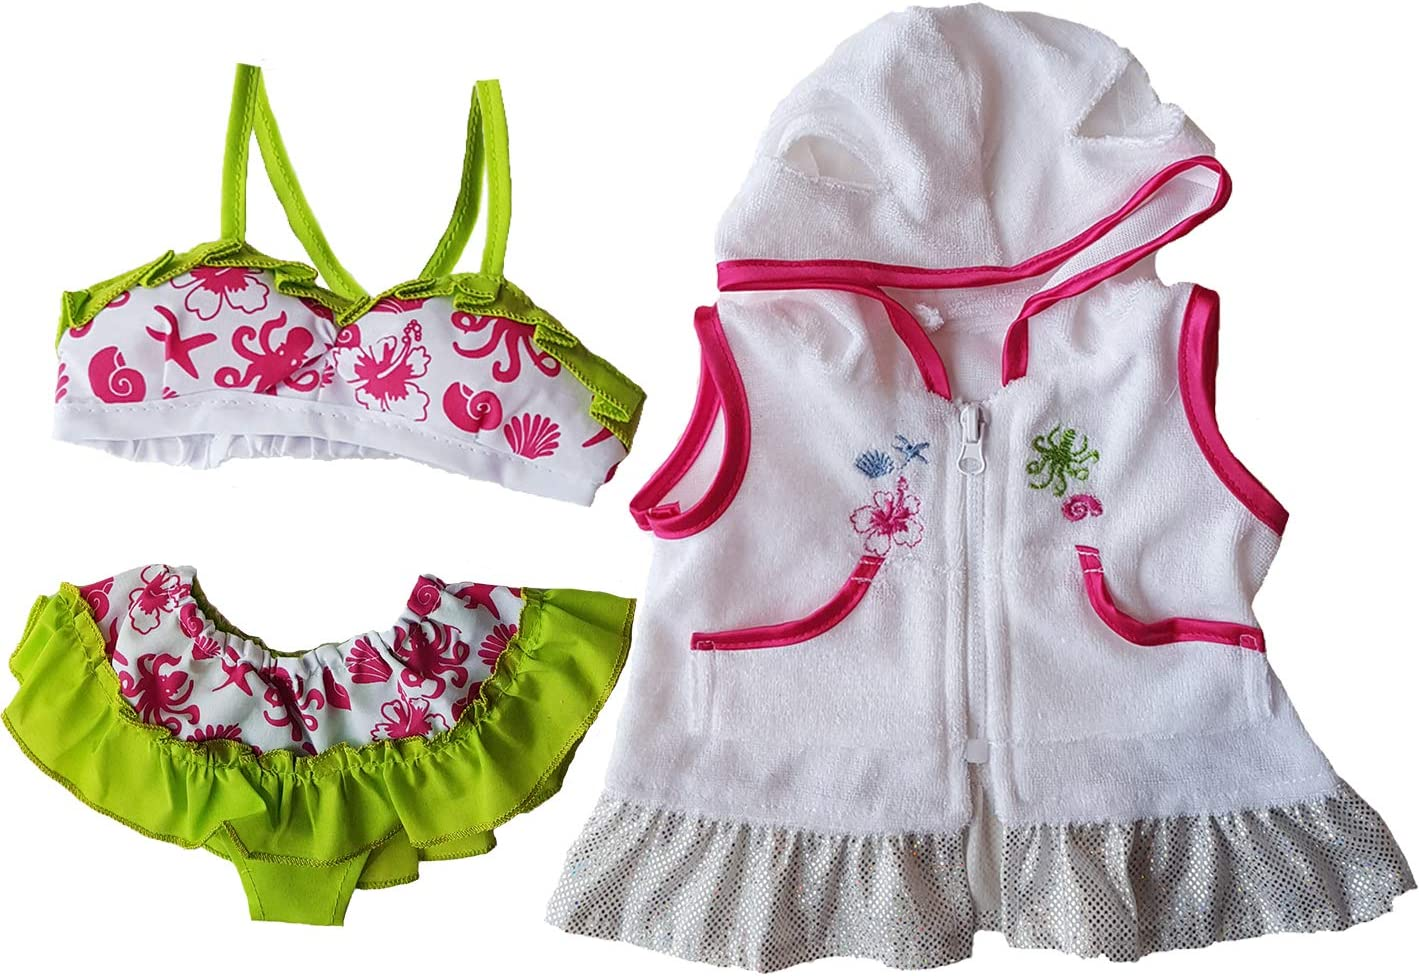 Swimsuit & Coverup Outfit Teddy Bear Clothes Fits Most 14